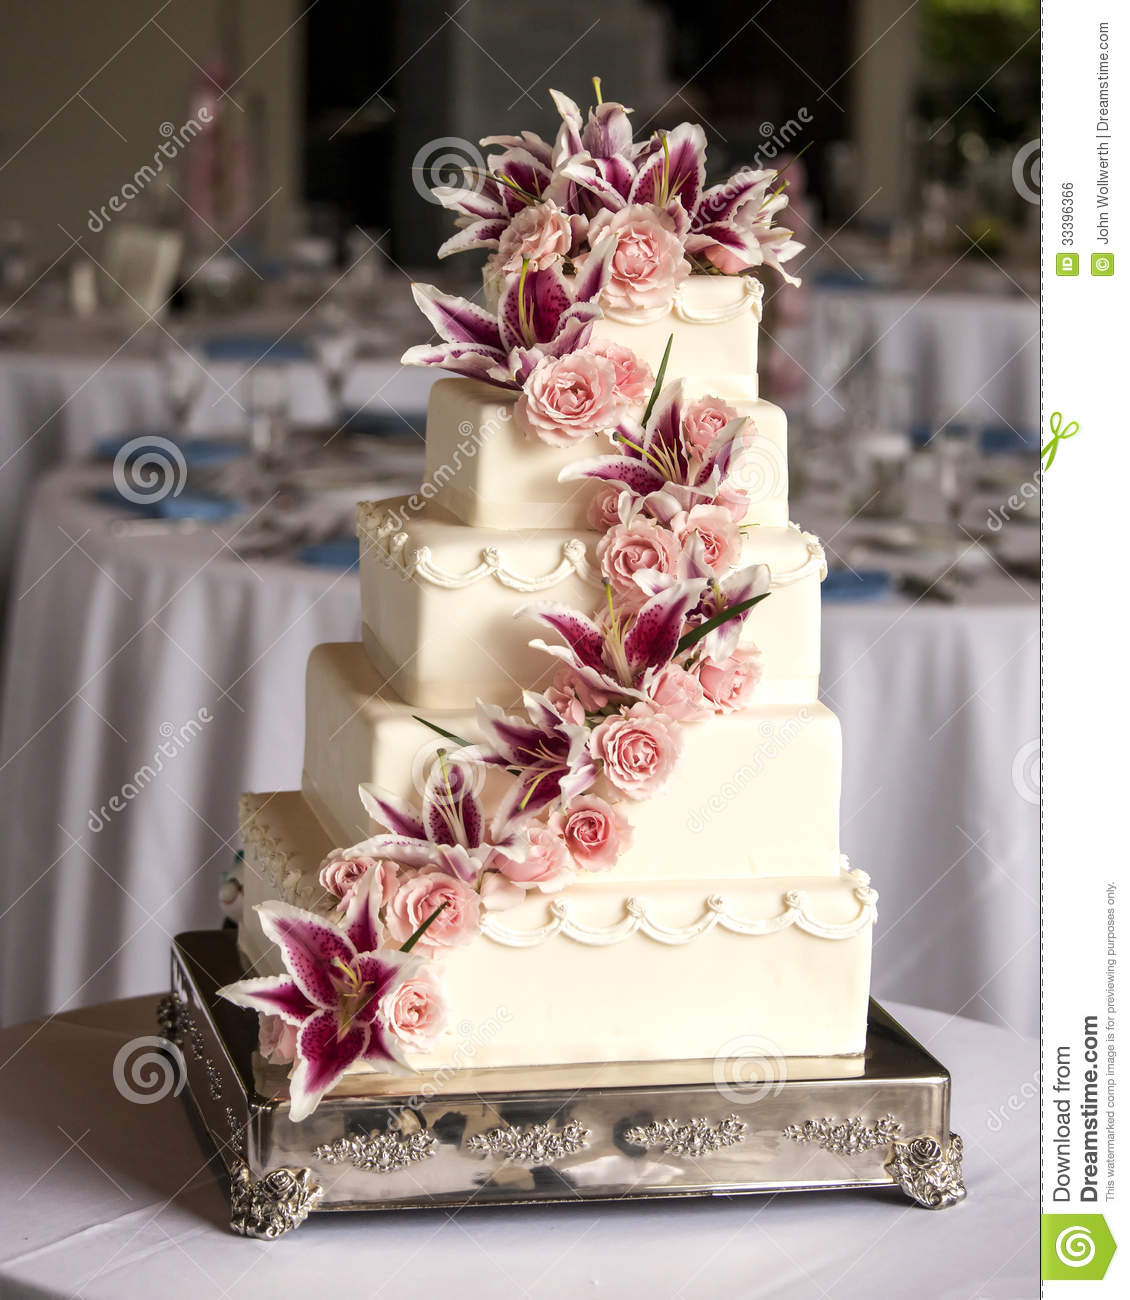 Elaborate Five Tiered Wedding Cake Stock Photo Image